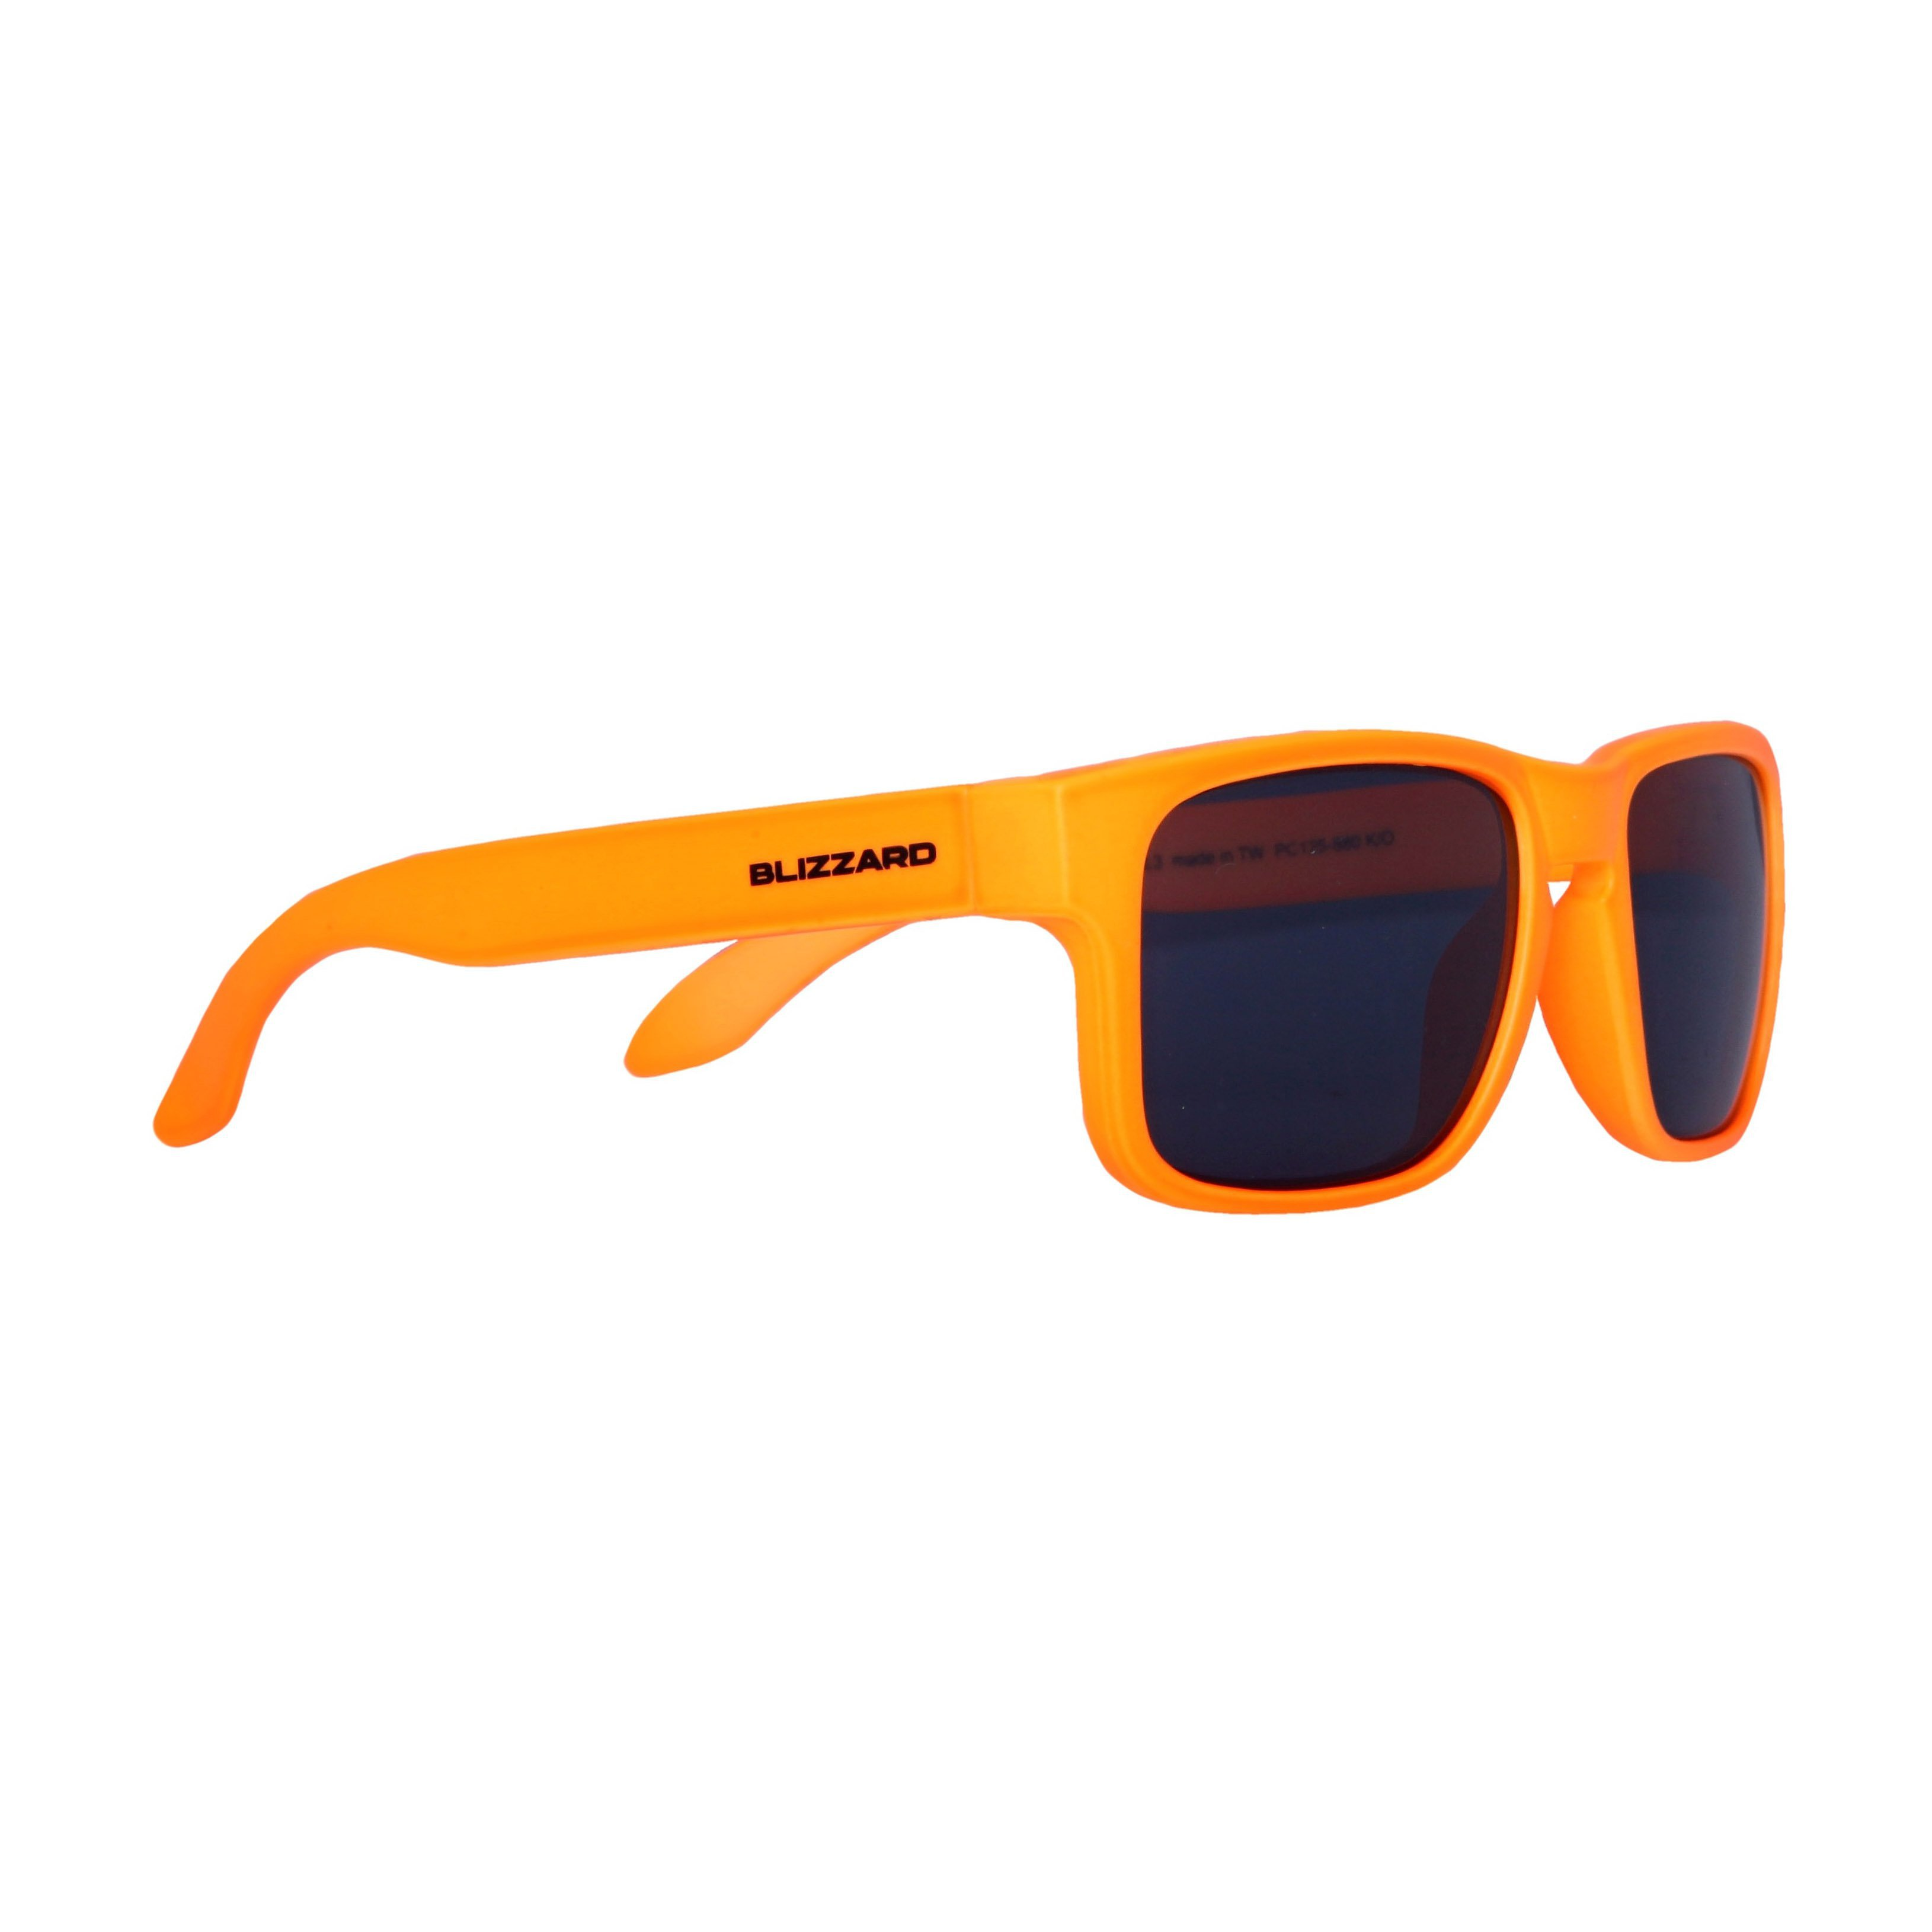 f2ed6ce8c Blizzard Sun Glasses PC125-880 Neon Orange Matt